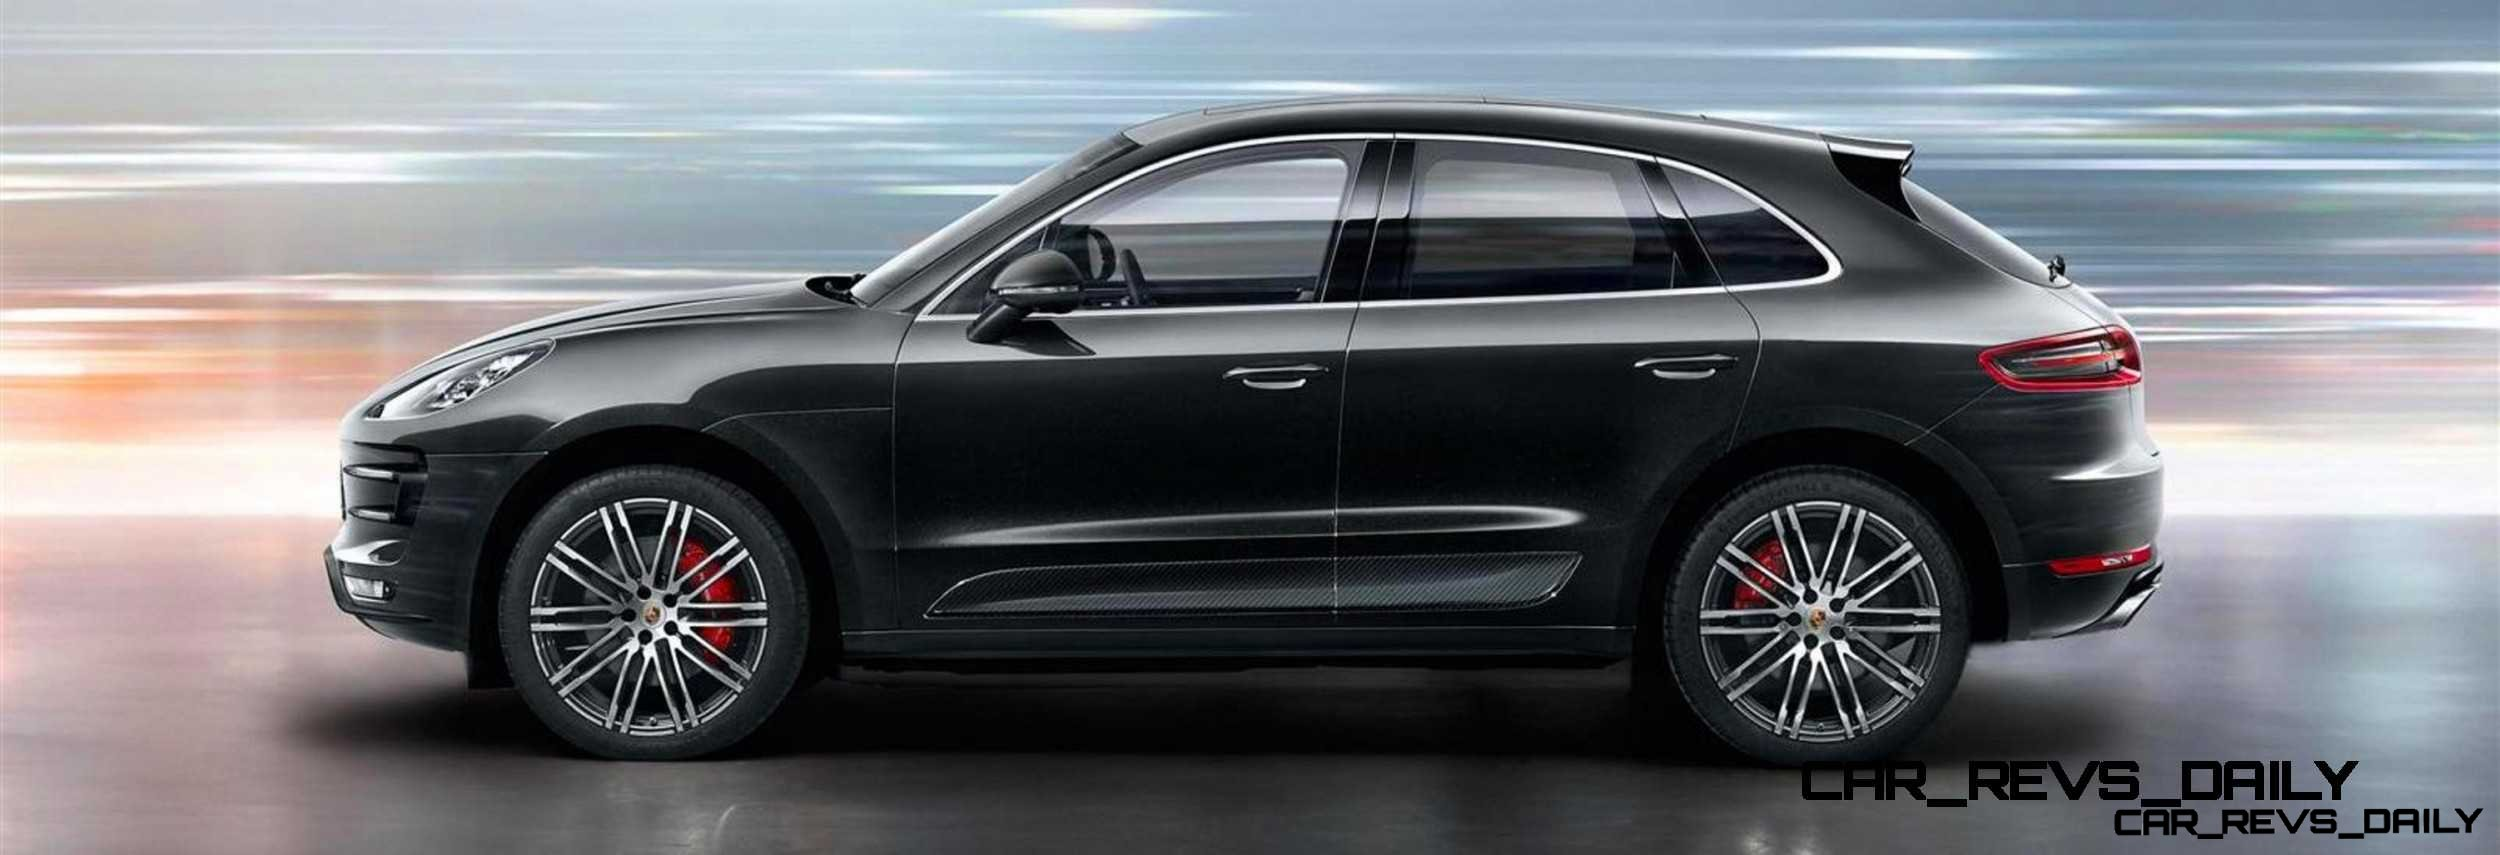 2015 Porsche Macan - Latest Images - CarRevsDaily.com 83